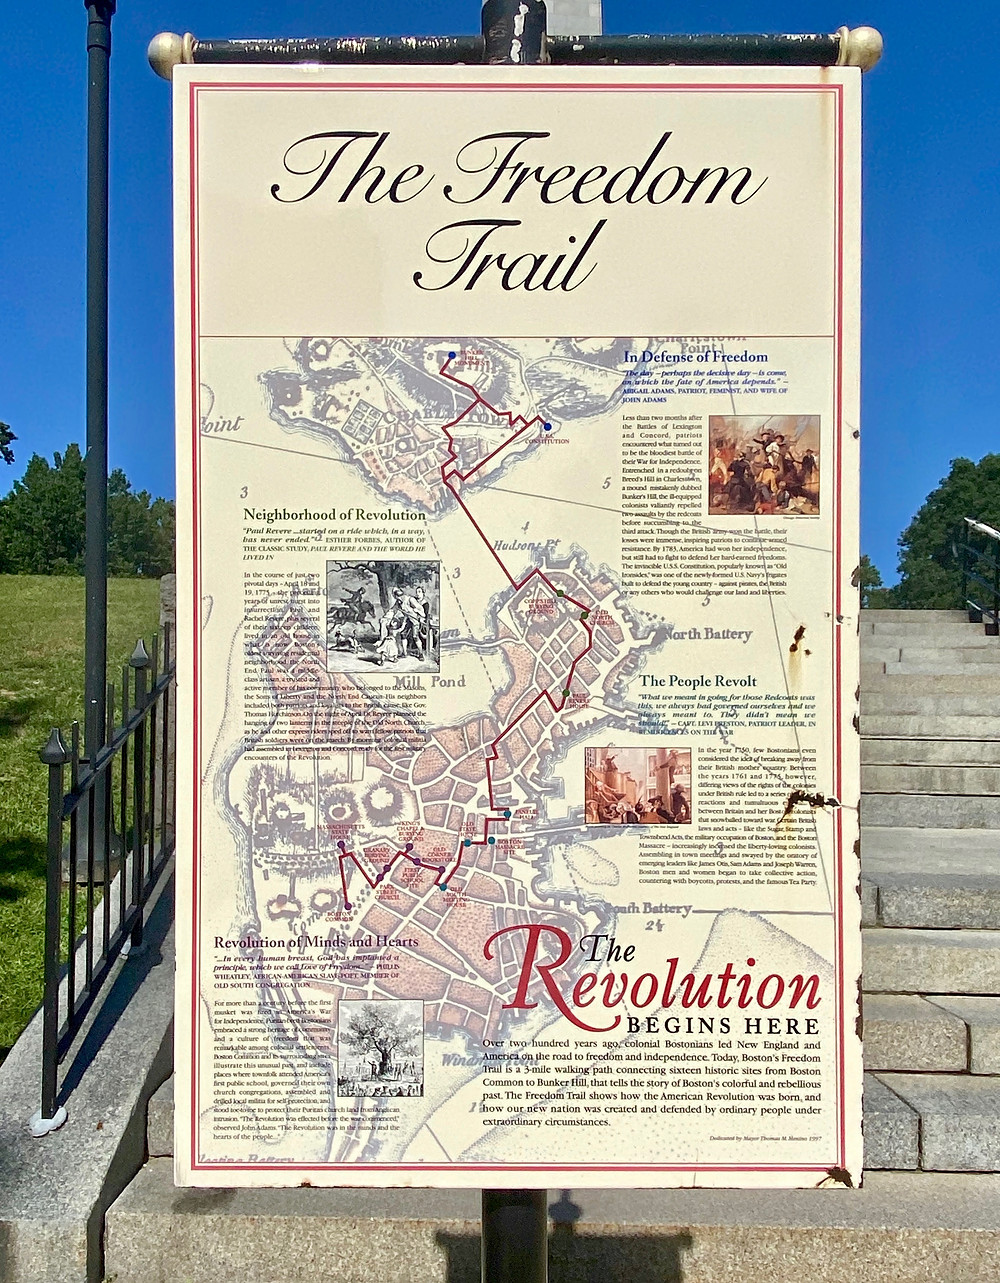 Freedom Trail sign at Bunker Hill in Charlestown